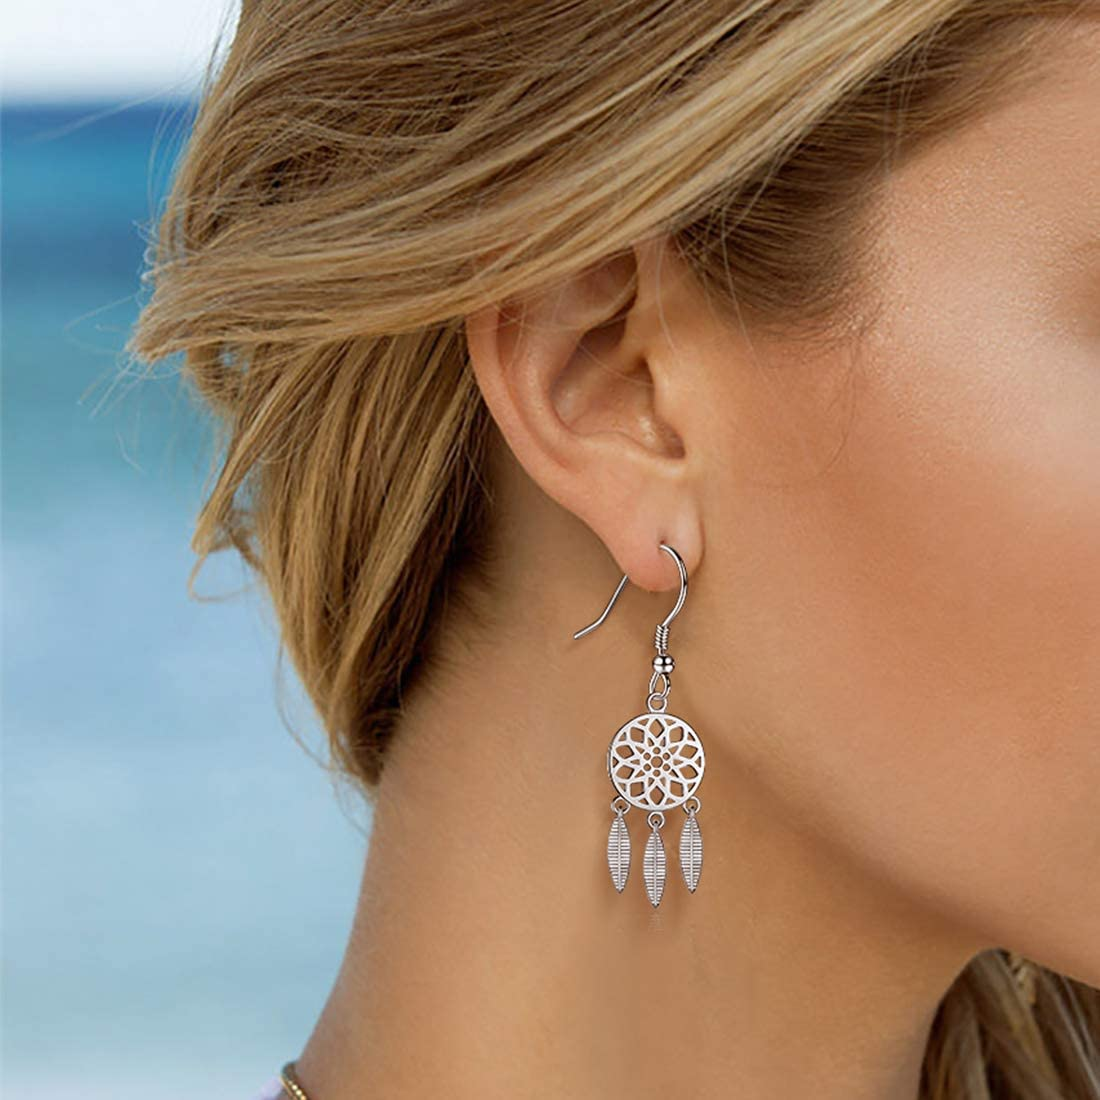 925 Sterling Silver Dreamcatcher Earrings Necklace and Jewelry Set for Women Bohemian Style